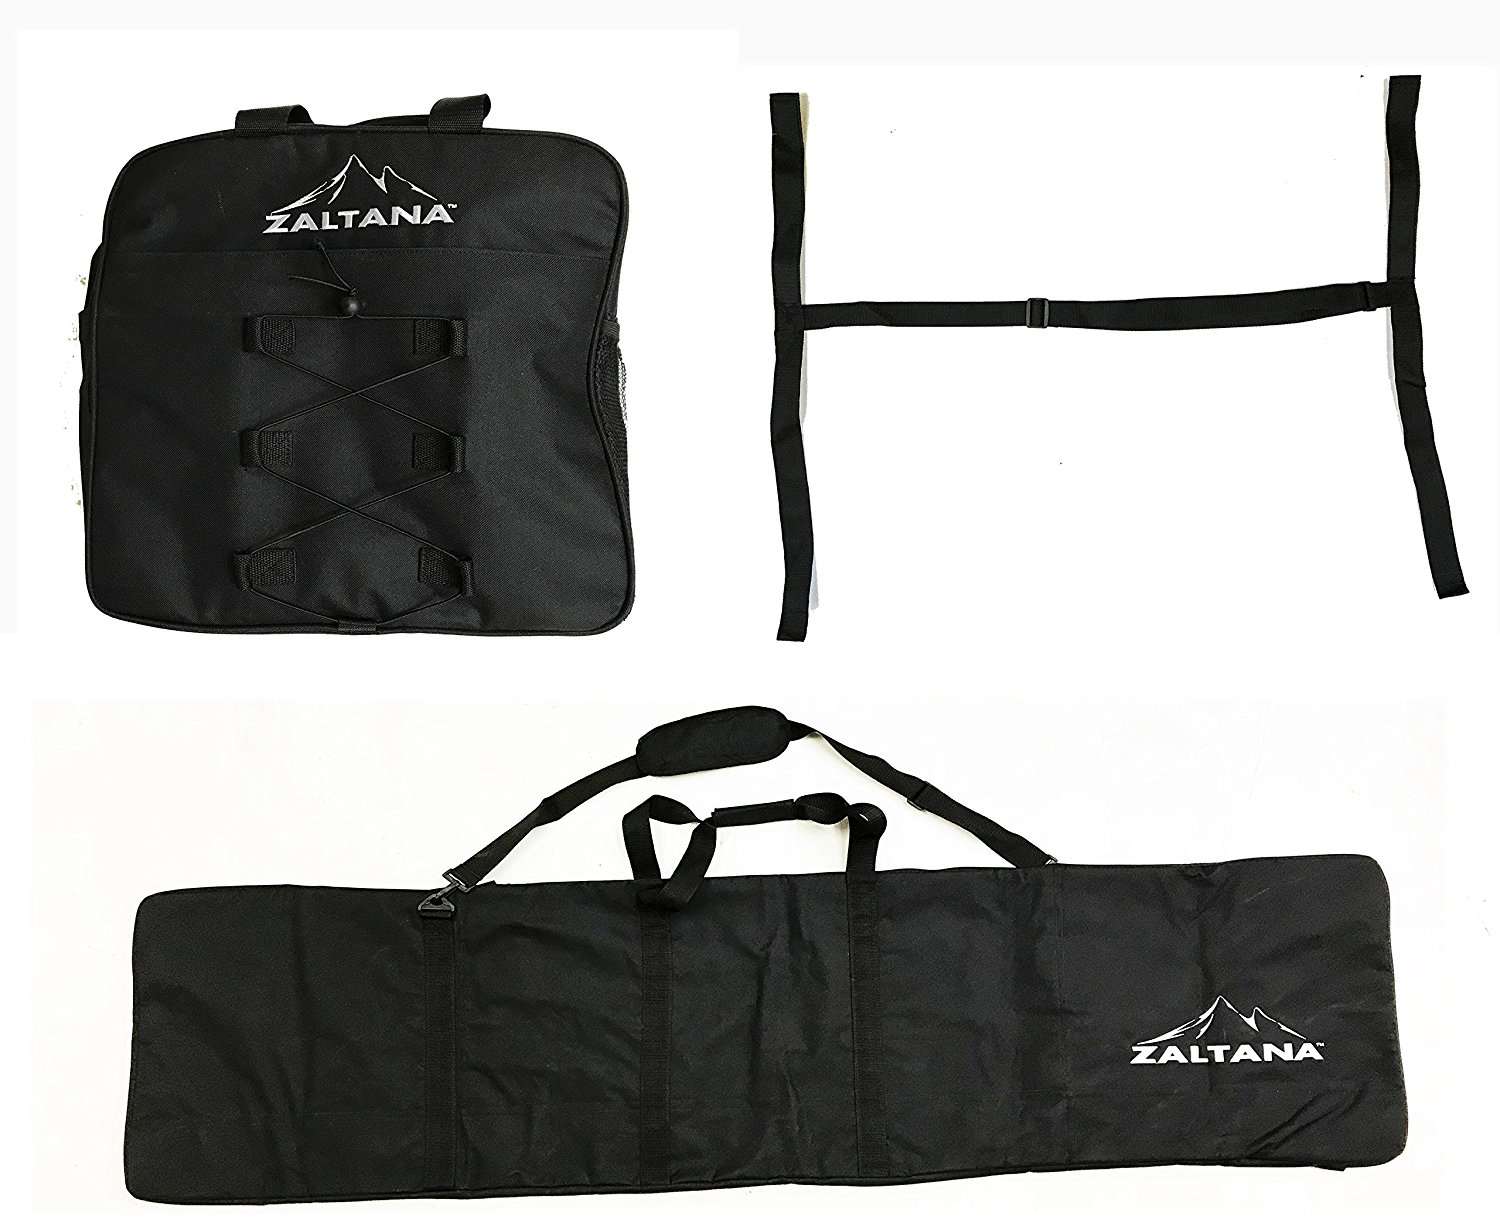 zaltana SKB25 Padded Snowboard Carier Bag Rack, Black by